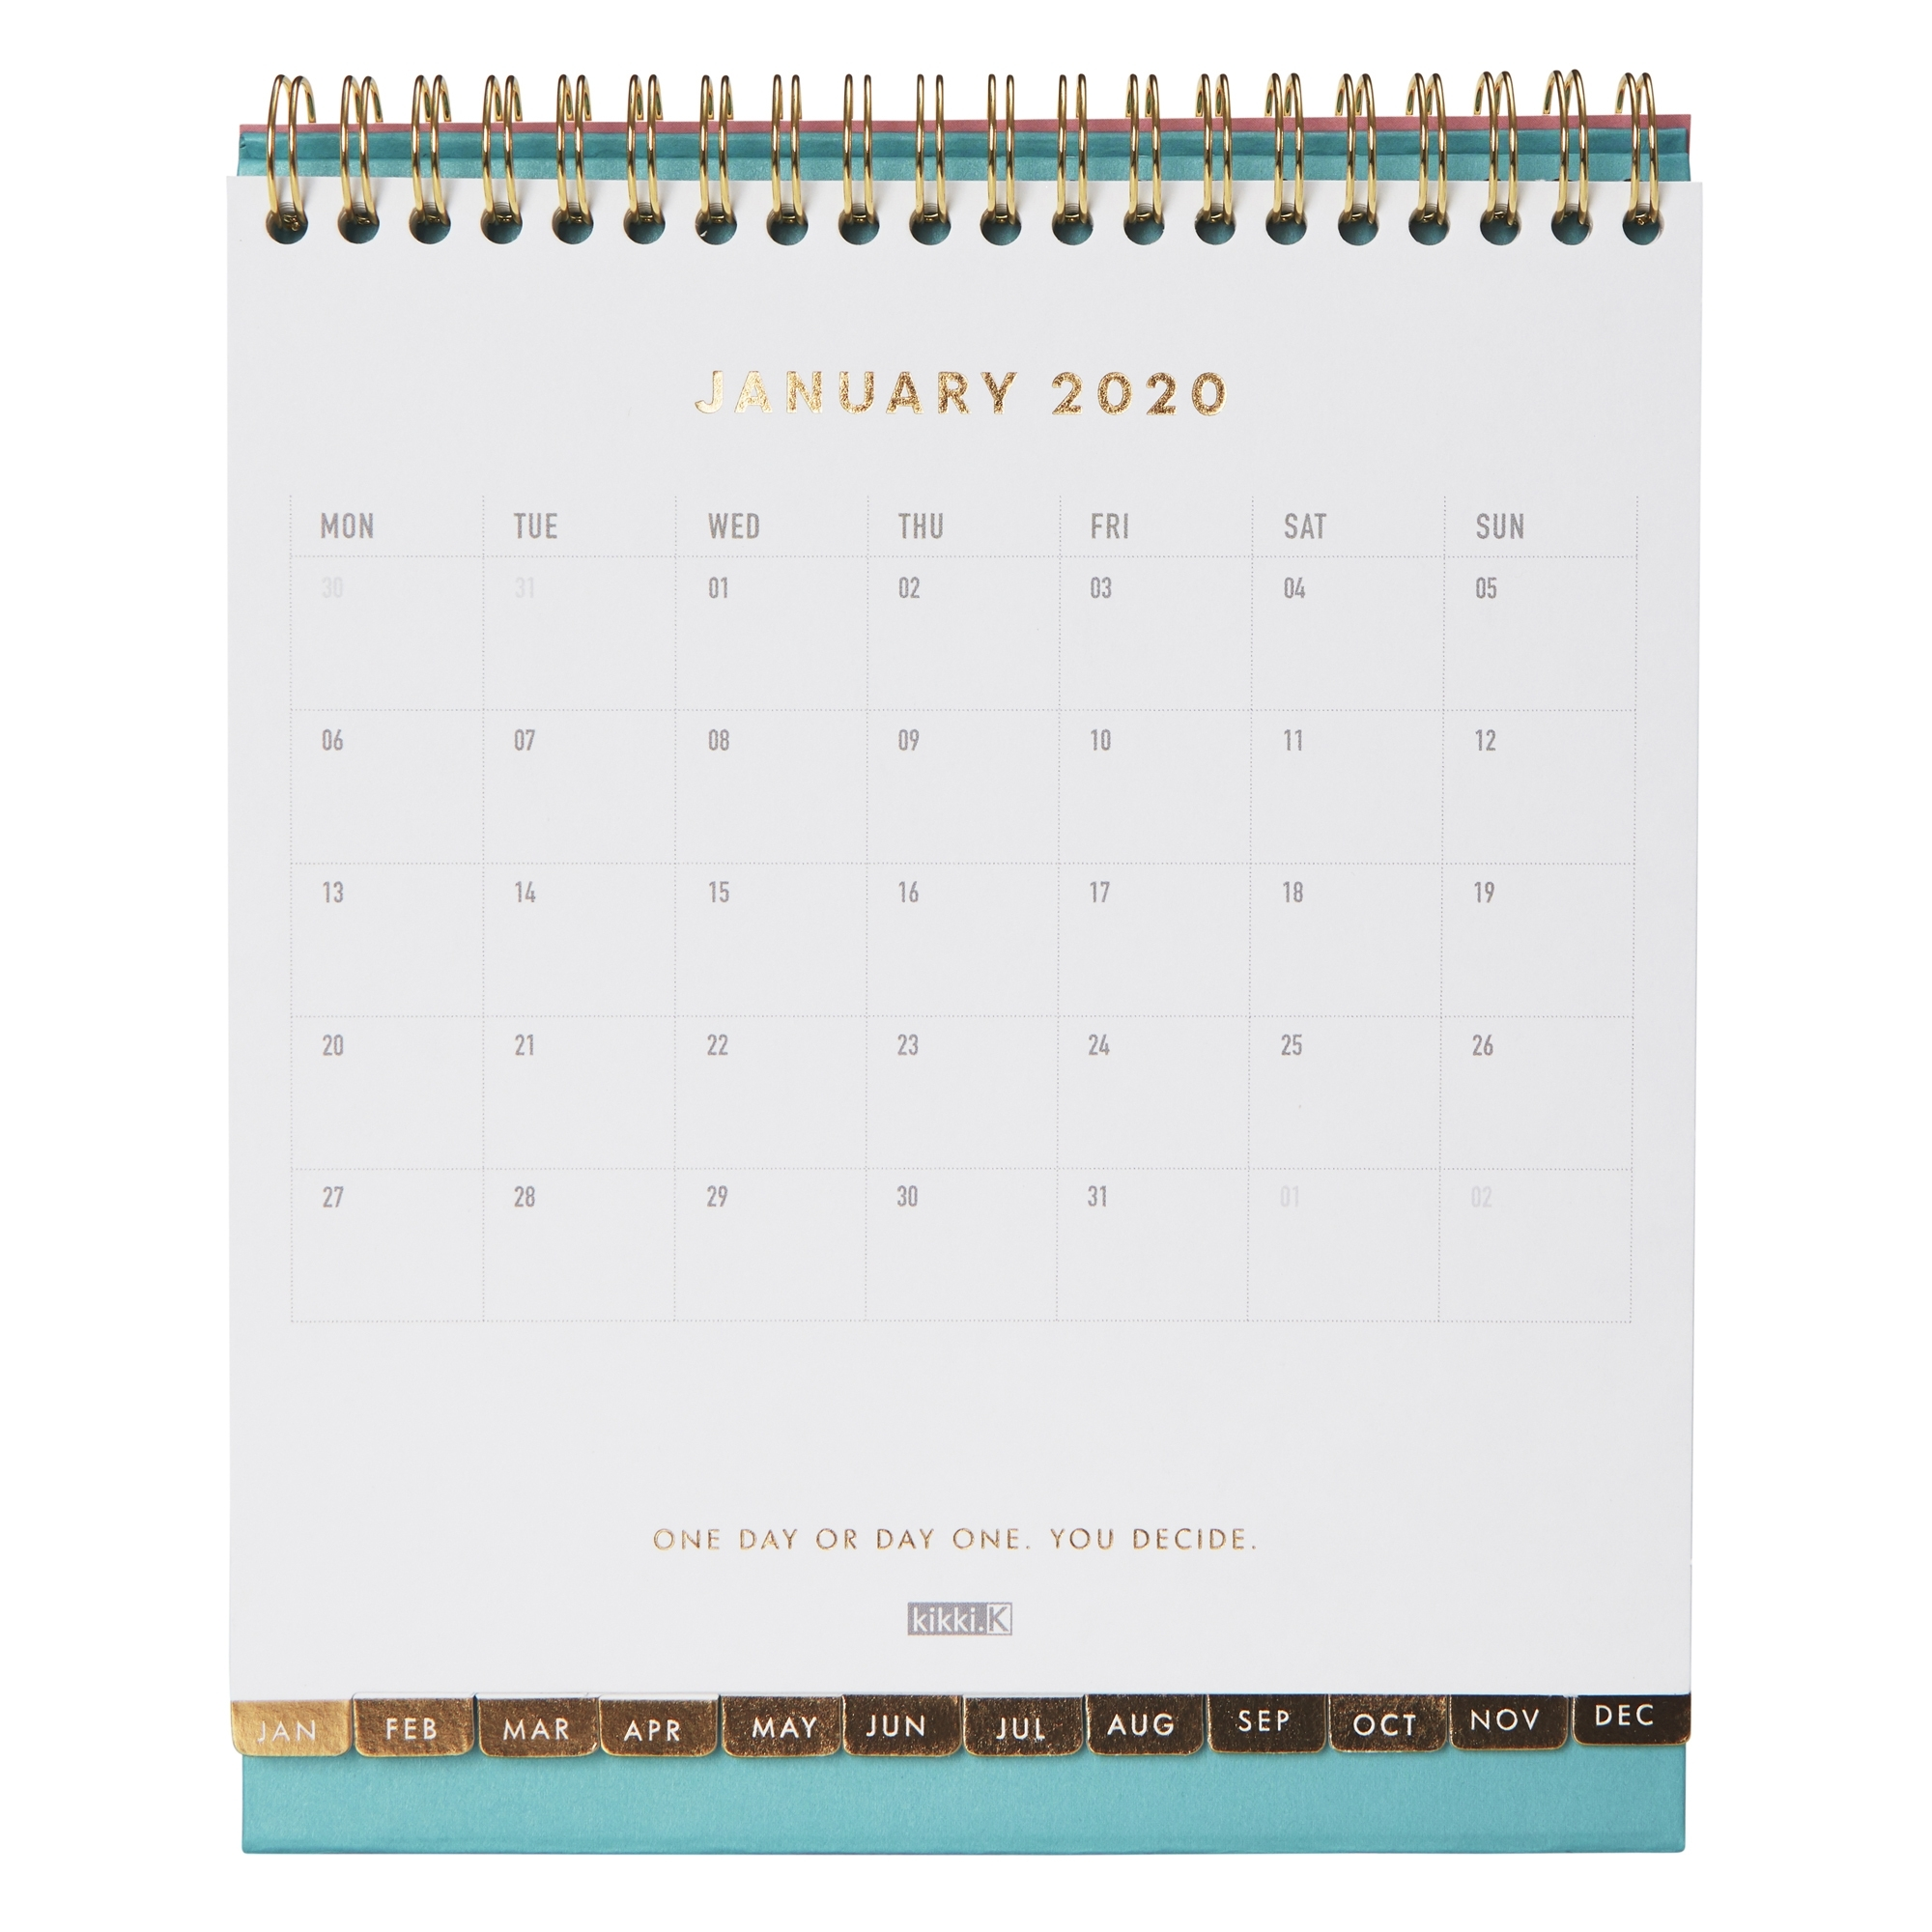 2020 Desk Calendar: Inspiration | Calendars | Kikki.k Us